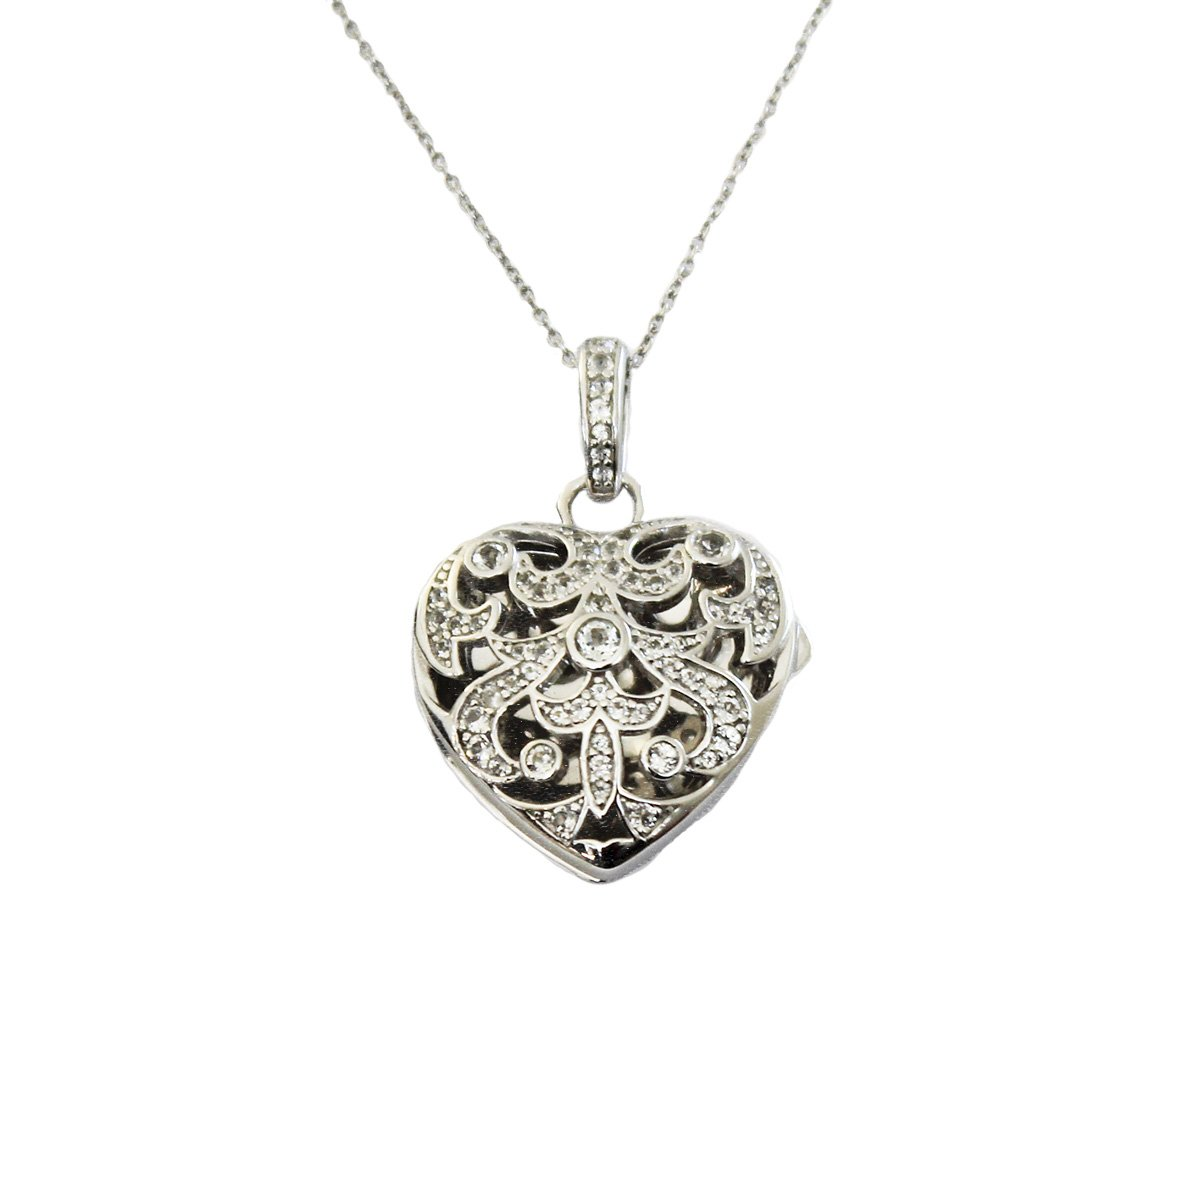 Sterling Silver-White Topaz-Heart Shaped-Custom Photo Locket Necklace-30-inch chain-The Deirdre by With You Lockets